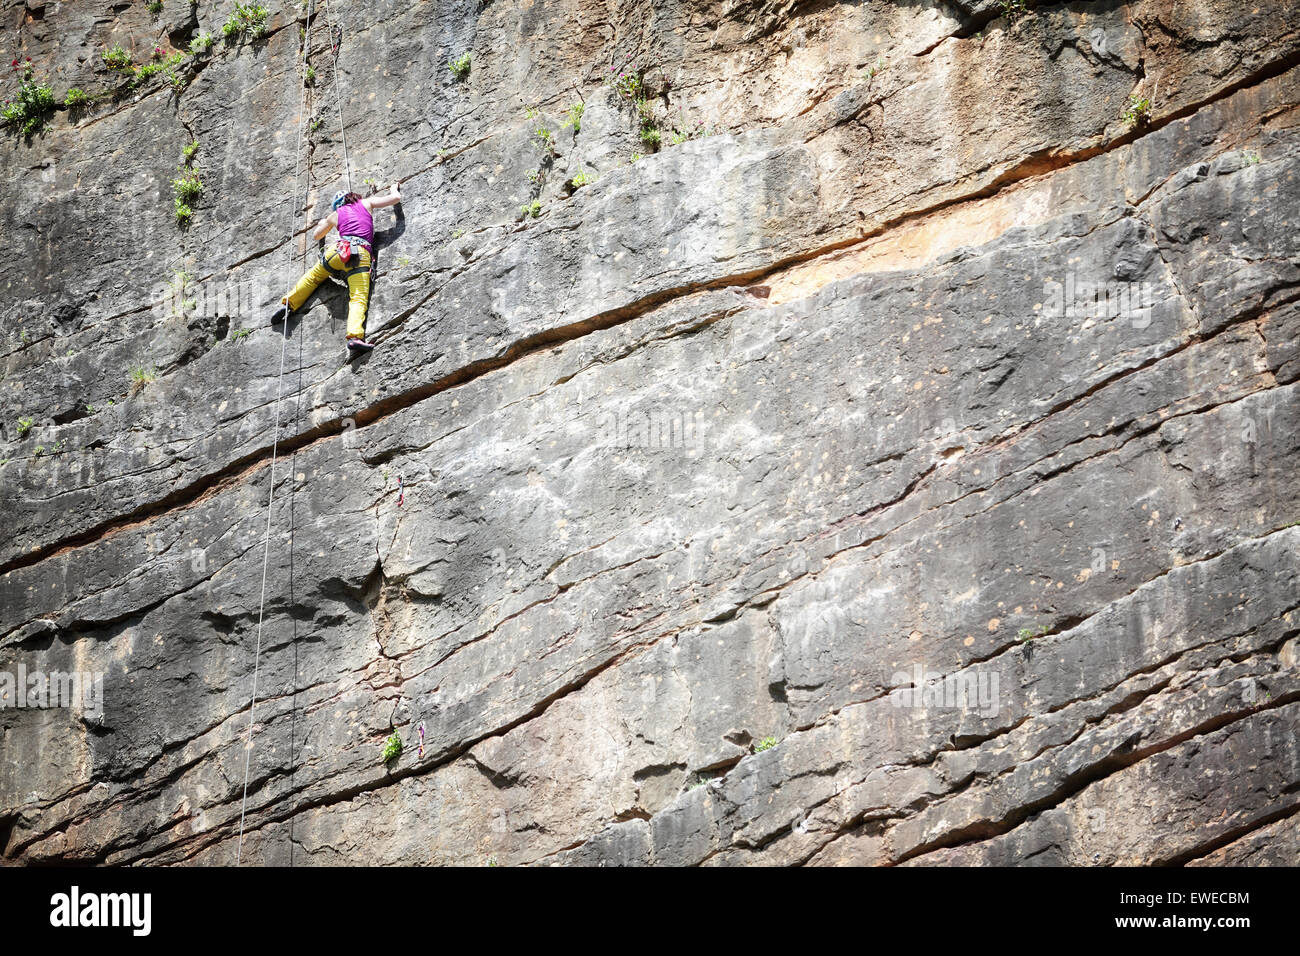 Rock climber stretching for hold on vertical climb with copy space - Stock Image